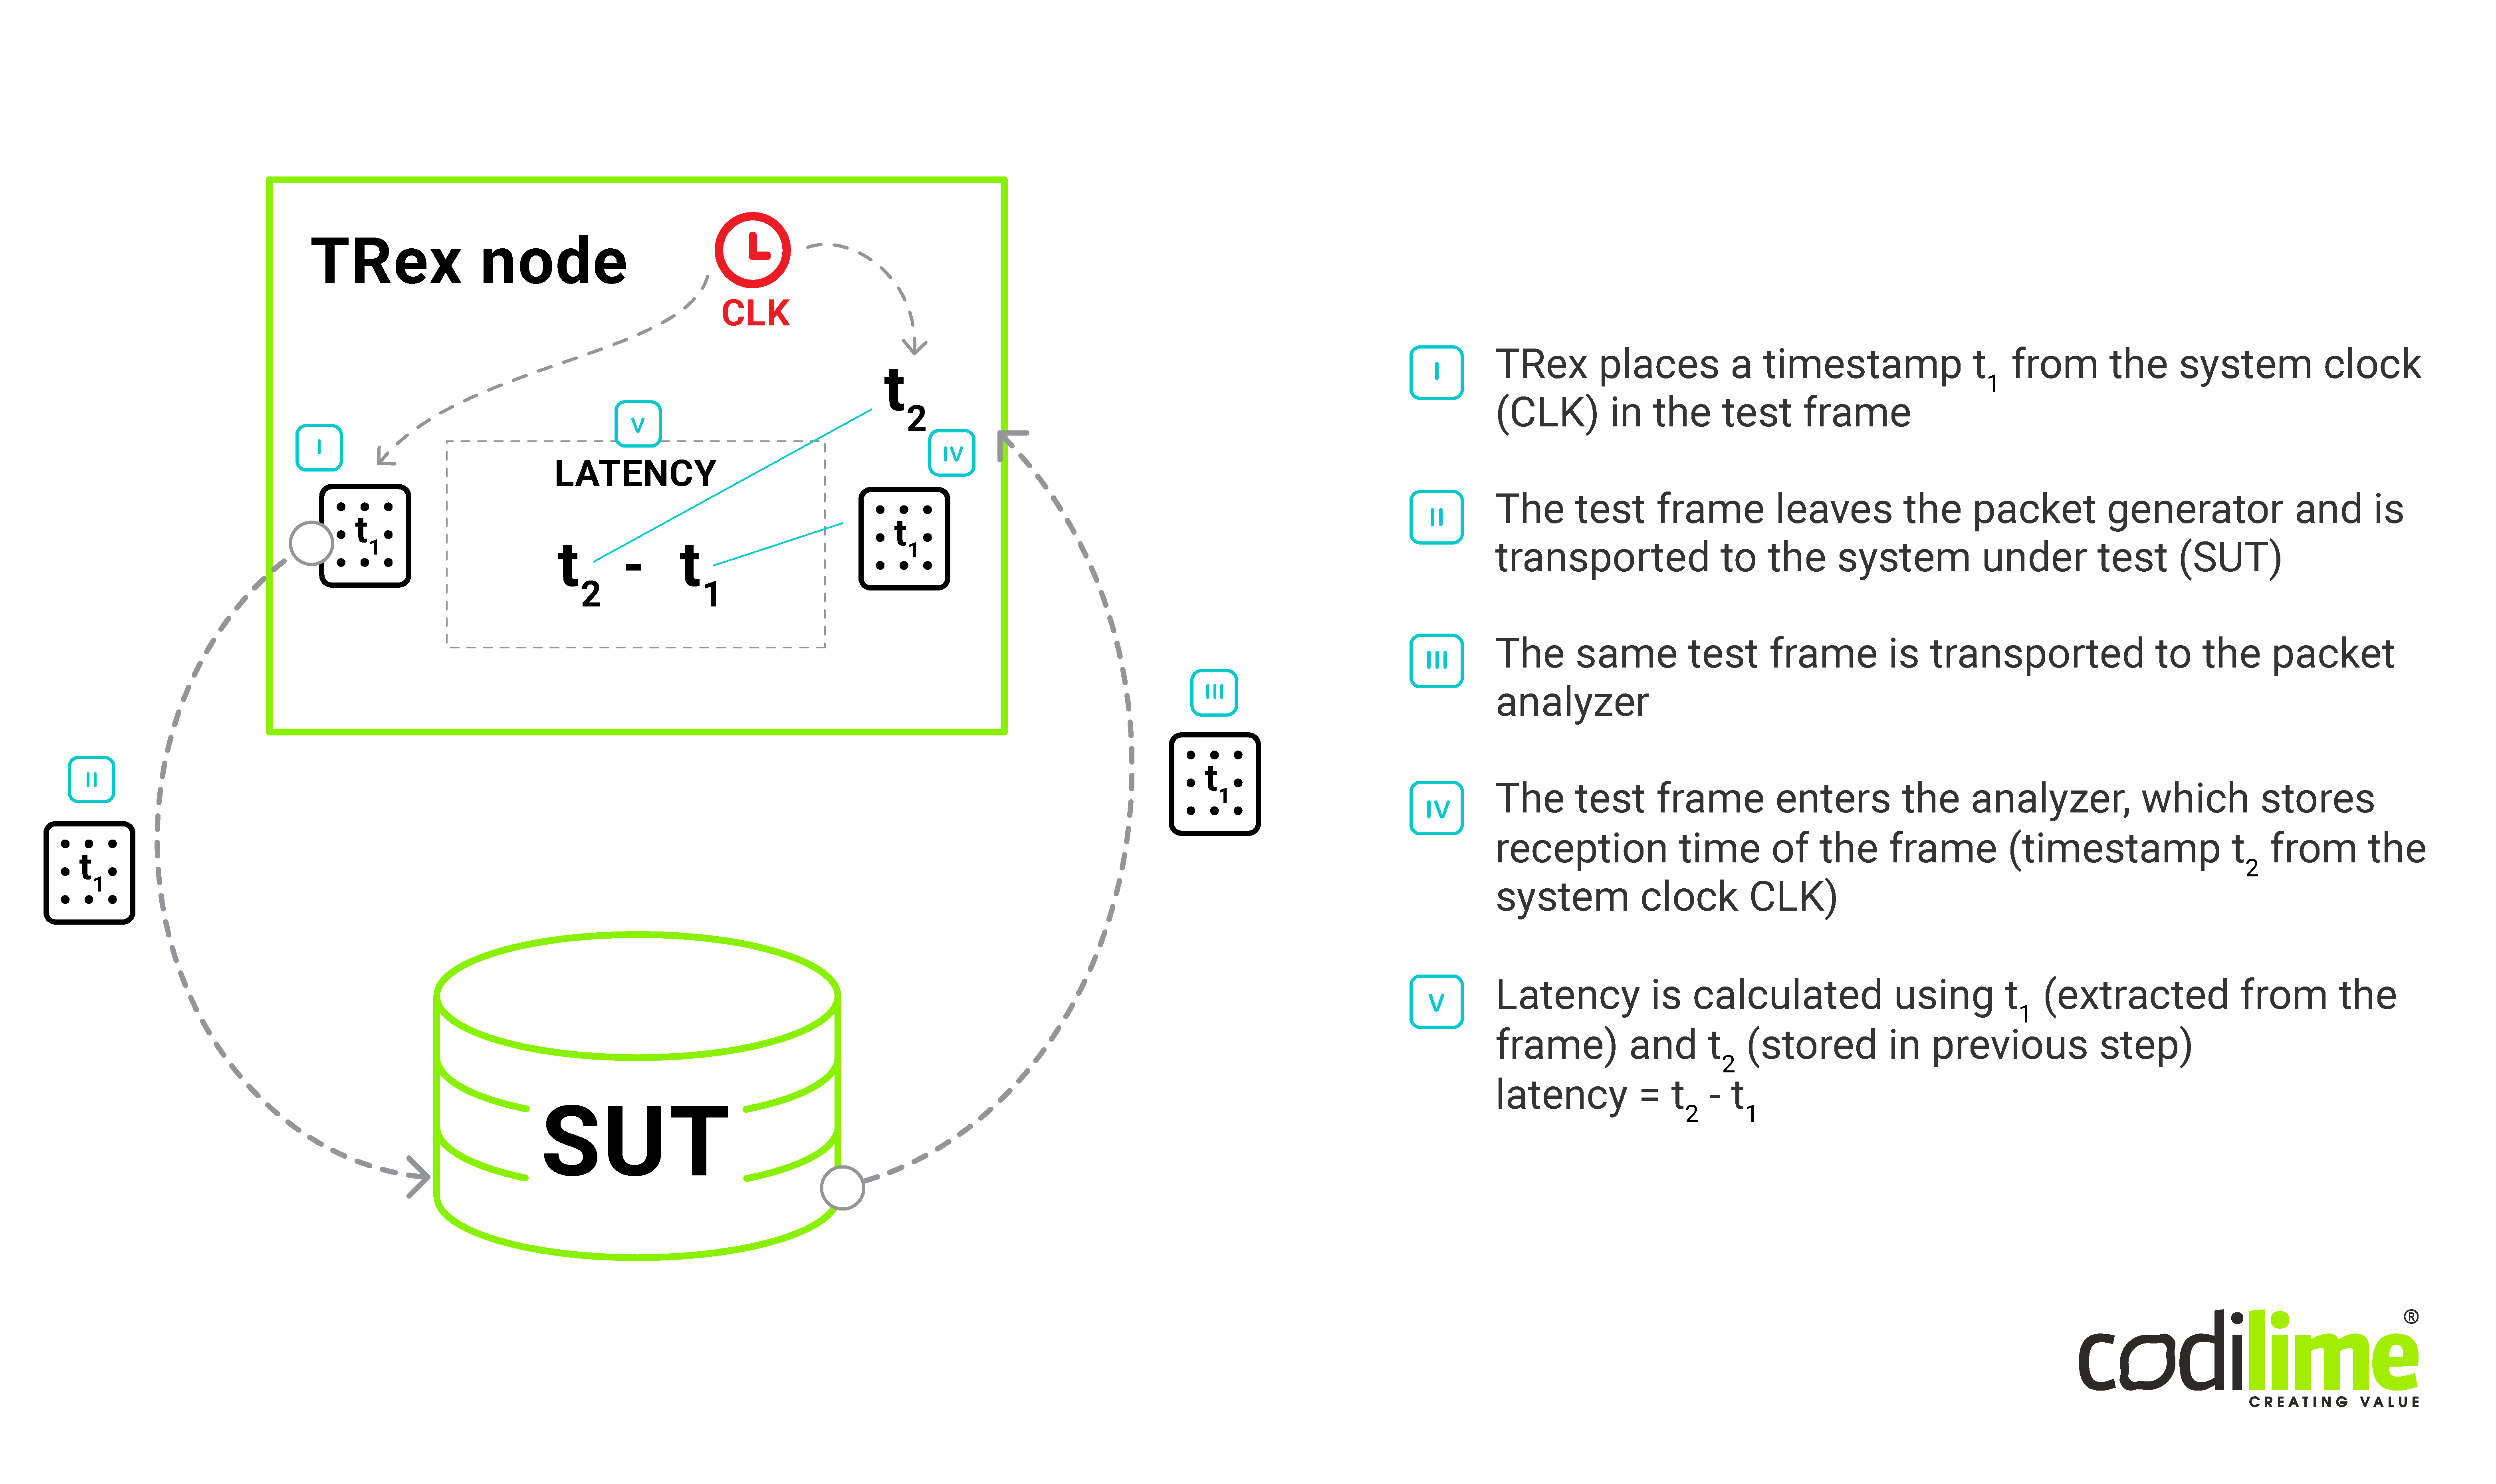 Loopback scenario with the same clock for generator and analyzer